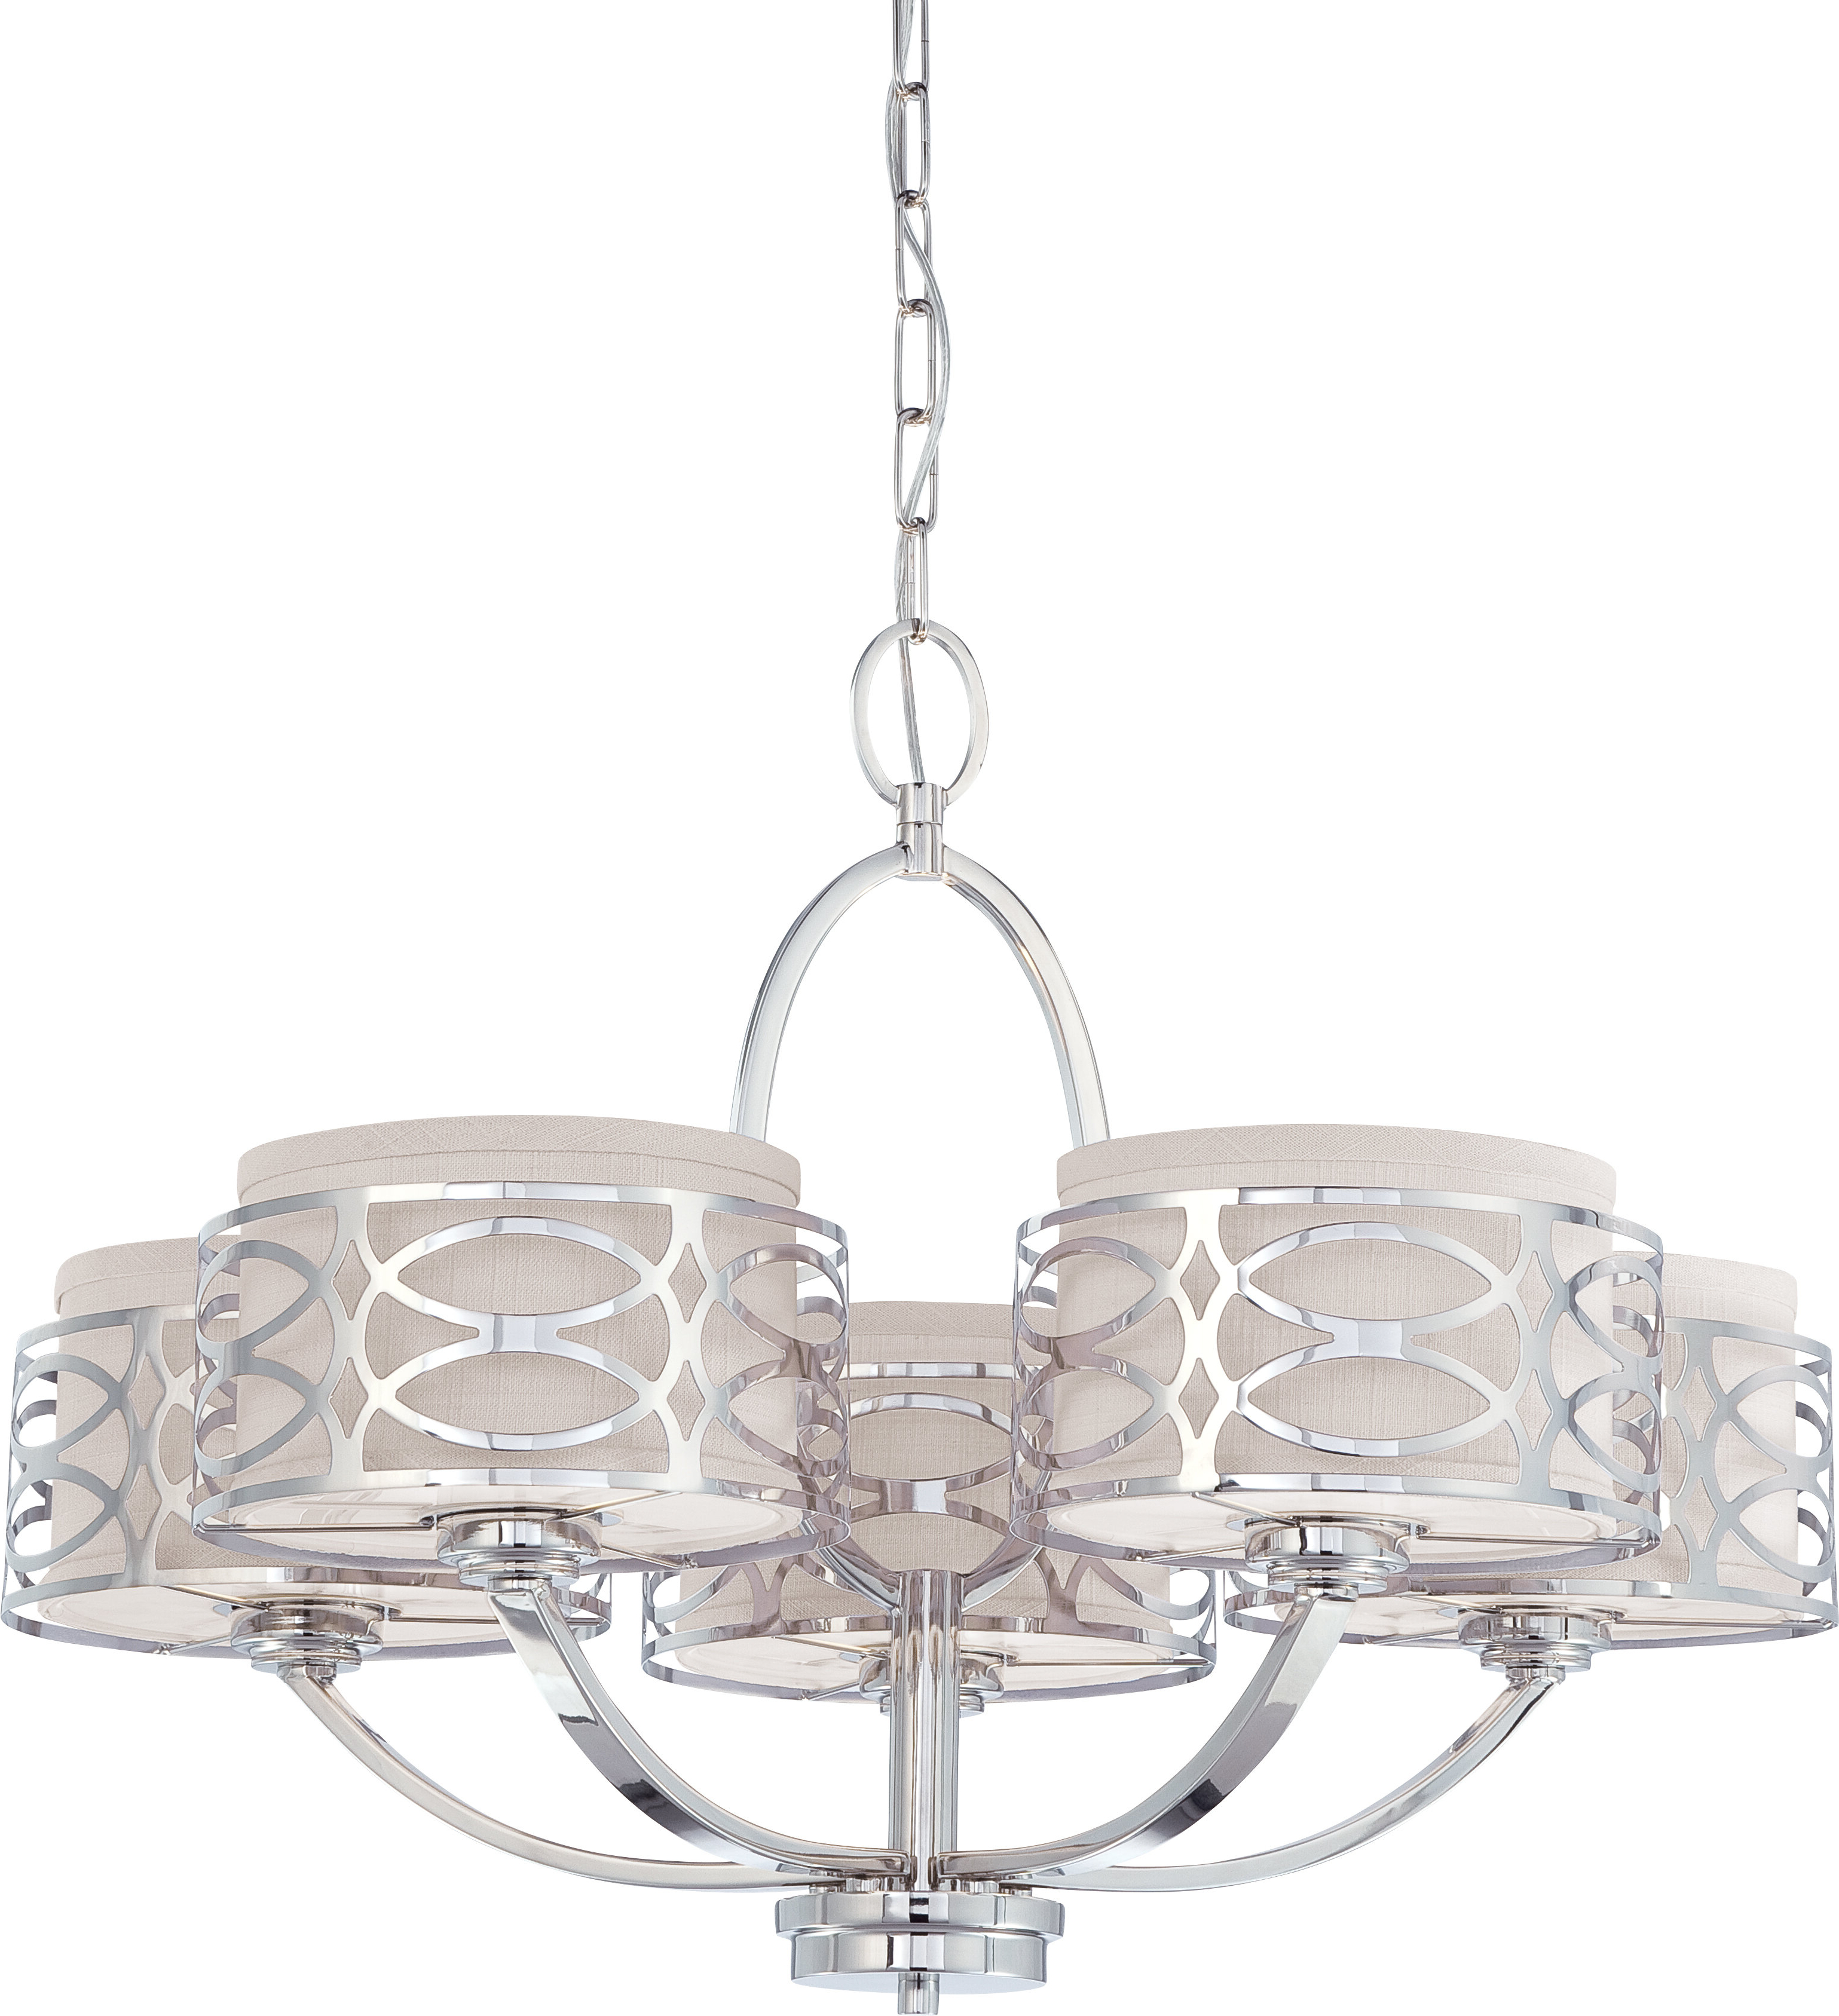 Bela 5 Light Drum Chandelier Intended For Well Known Hermione 5 Light Drum Chandeliers (View 11 of 25)